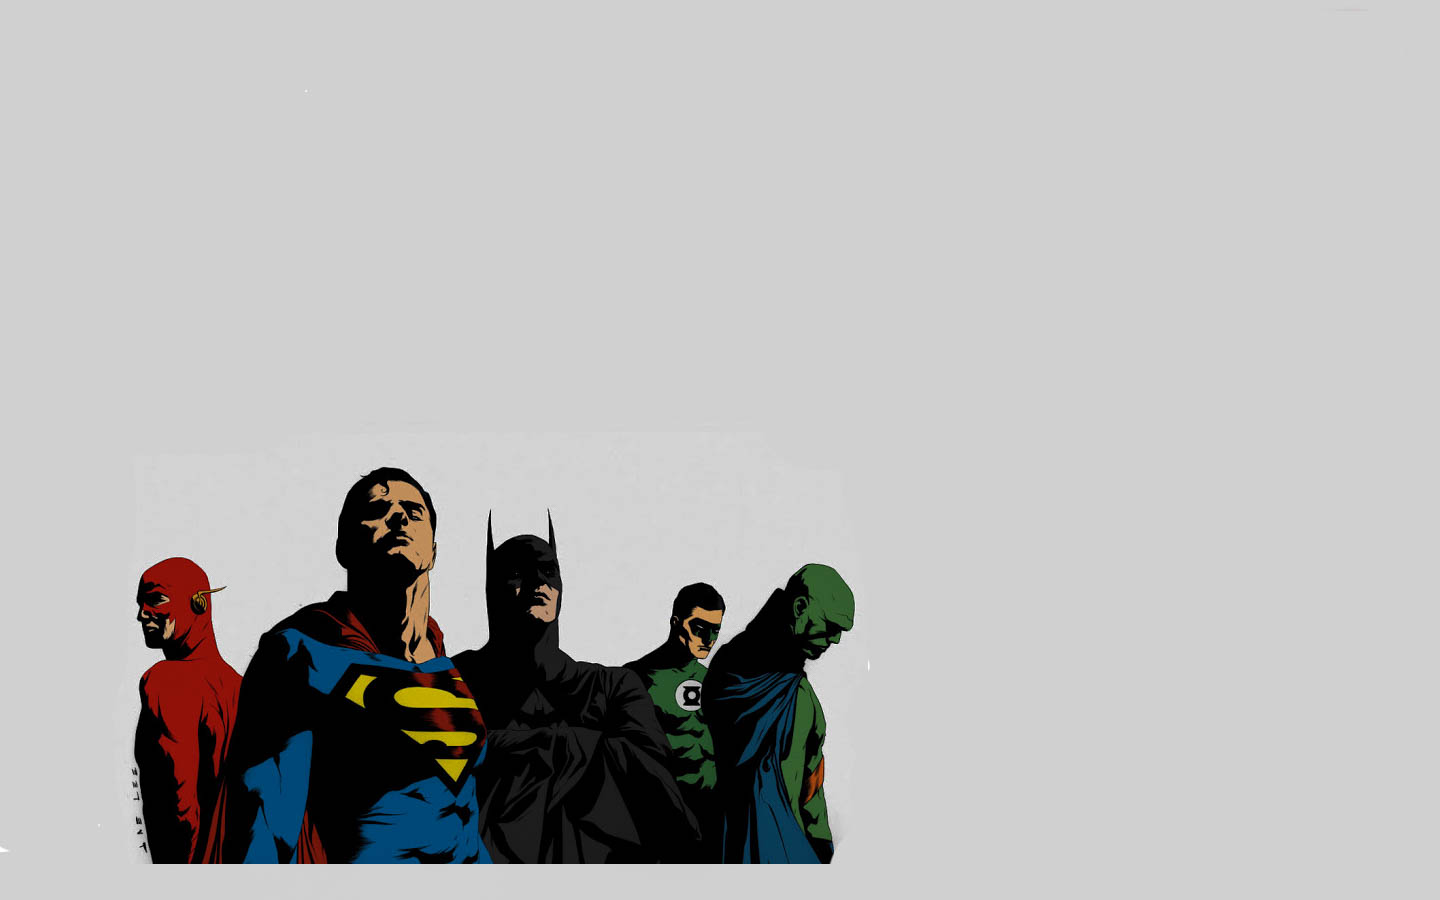 Girls Wallpapers Samsung Justice League Hd Wallpapers In High Definition All Hd